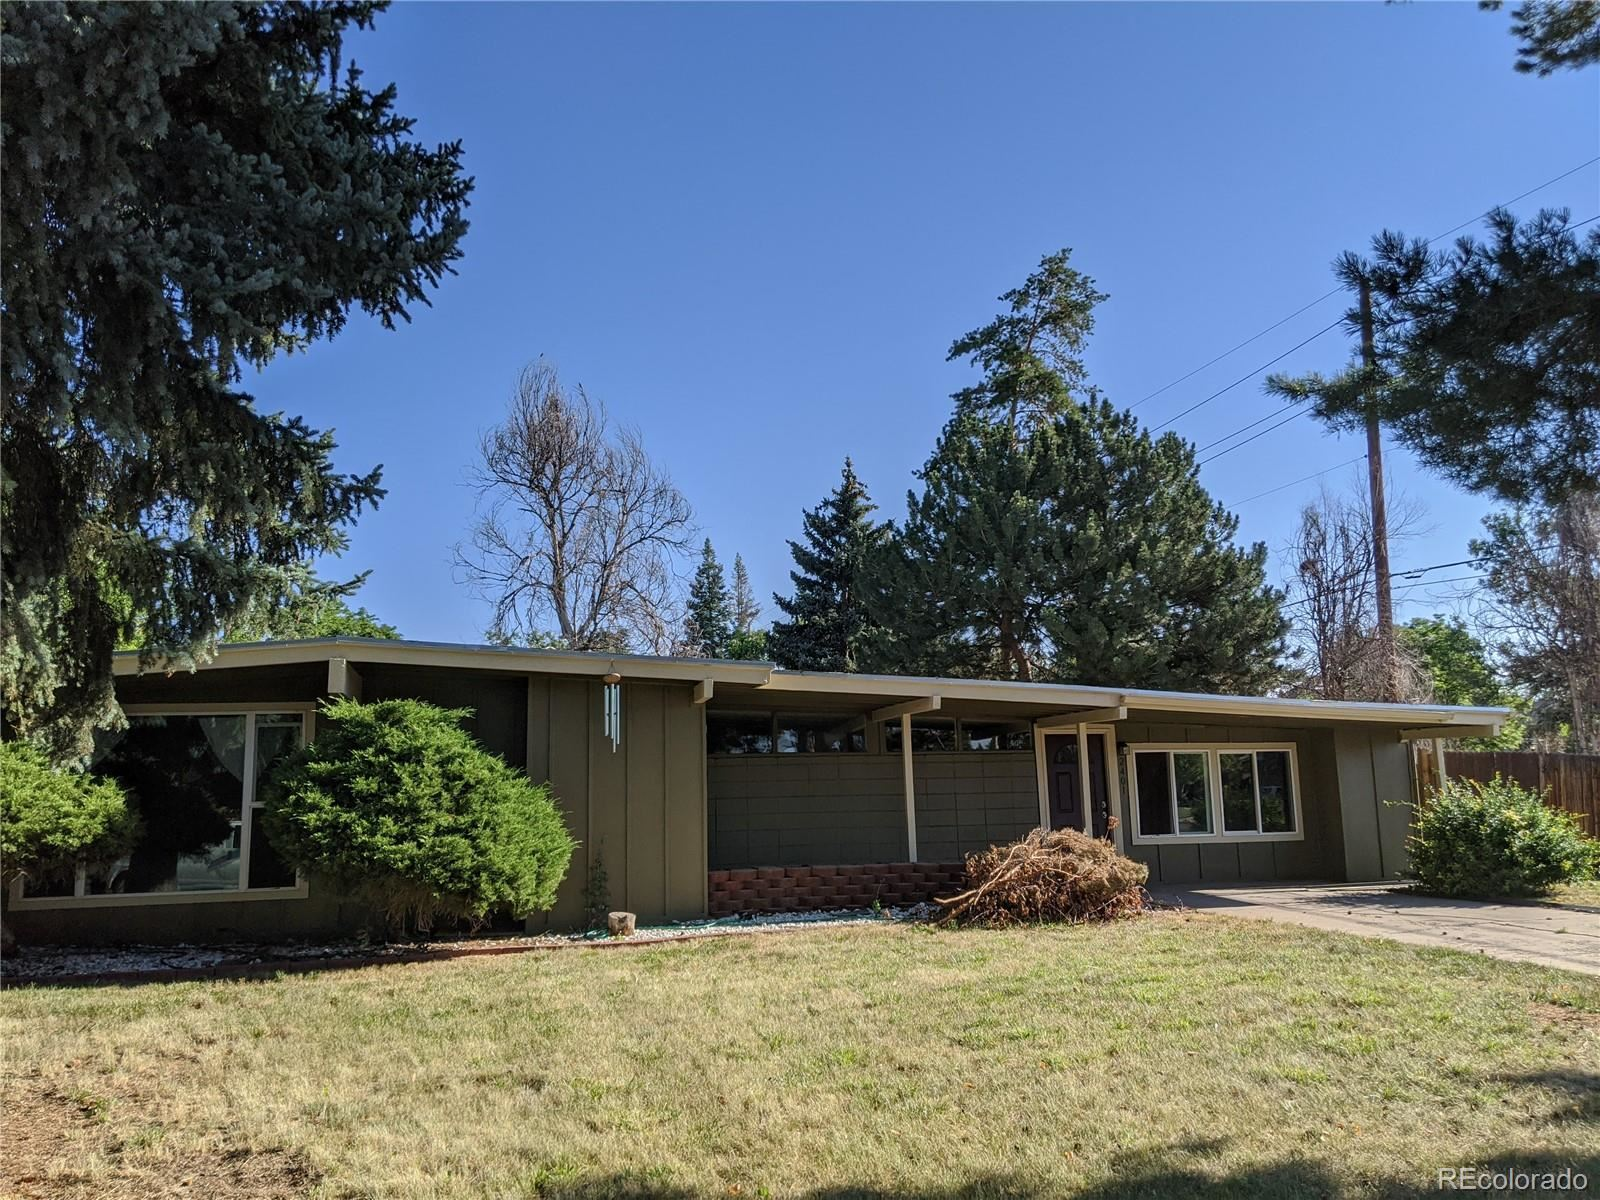 2401 Valley View Drive, Denver, CO 80221 - #: 4461914